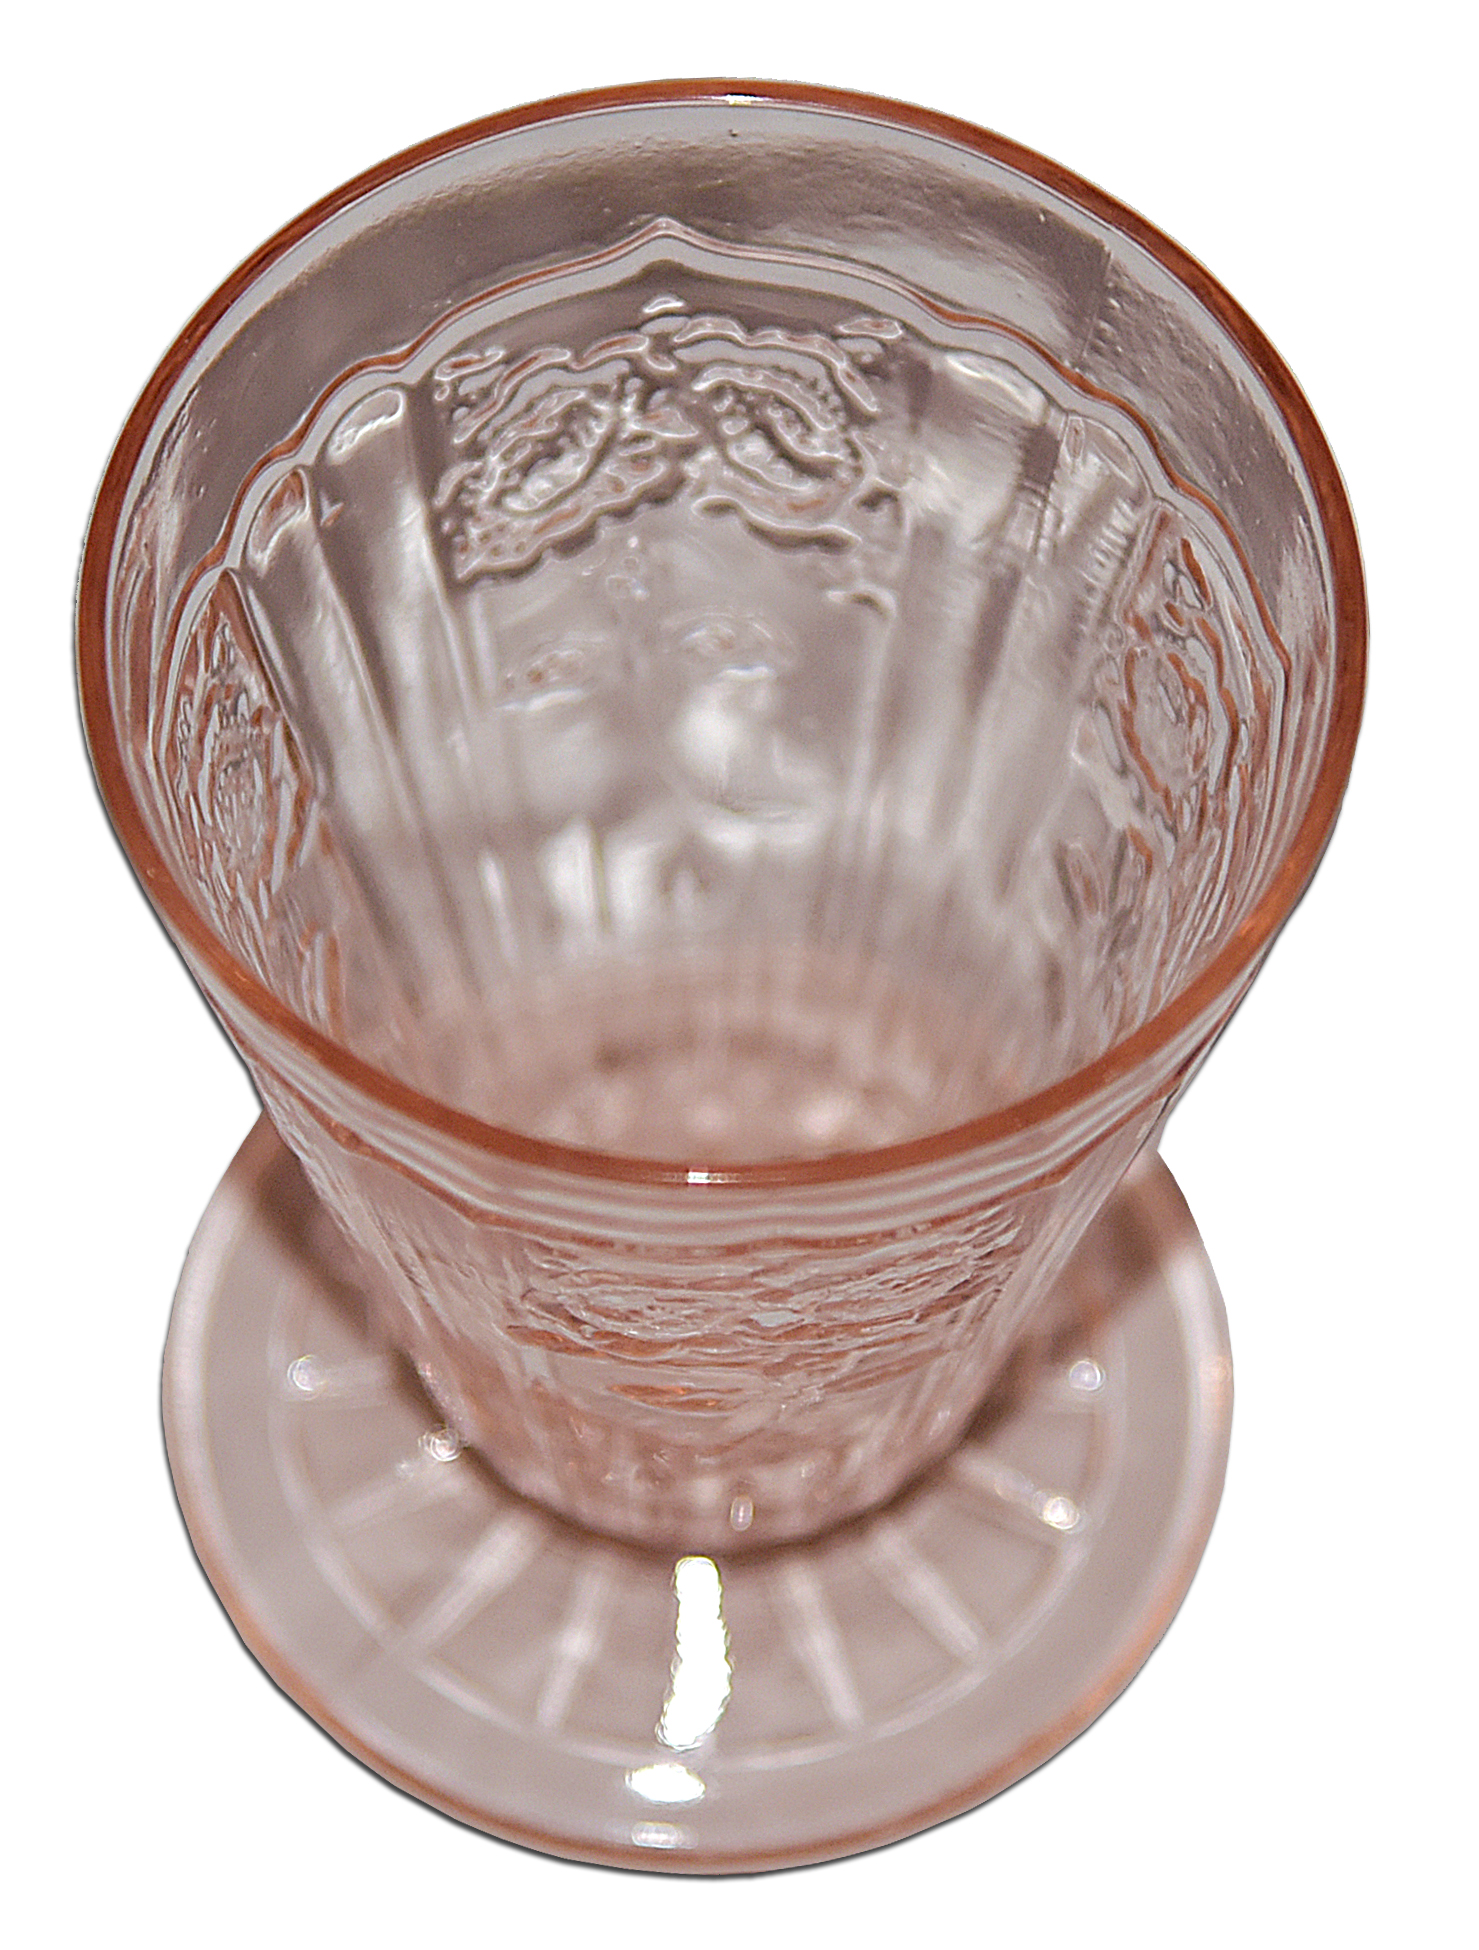 Hocking Pink Mayfair Footed Juice Tumbler Looking Down